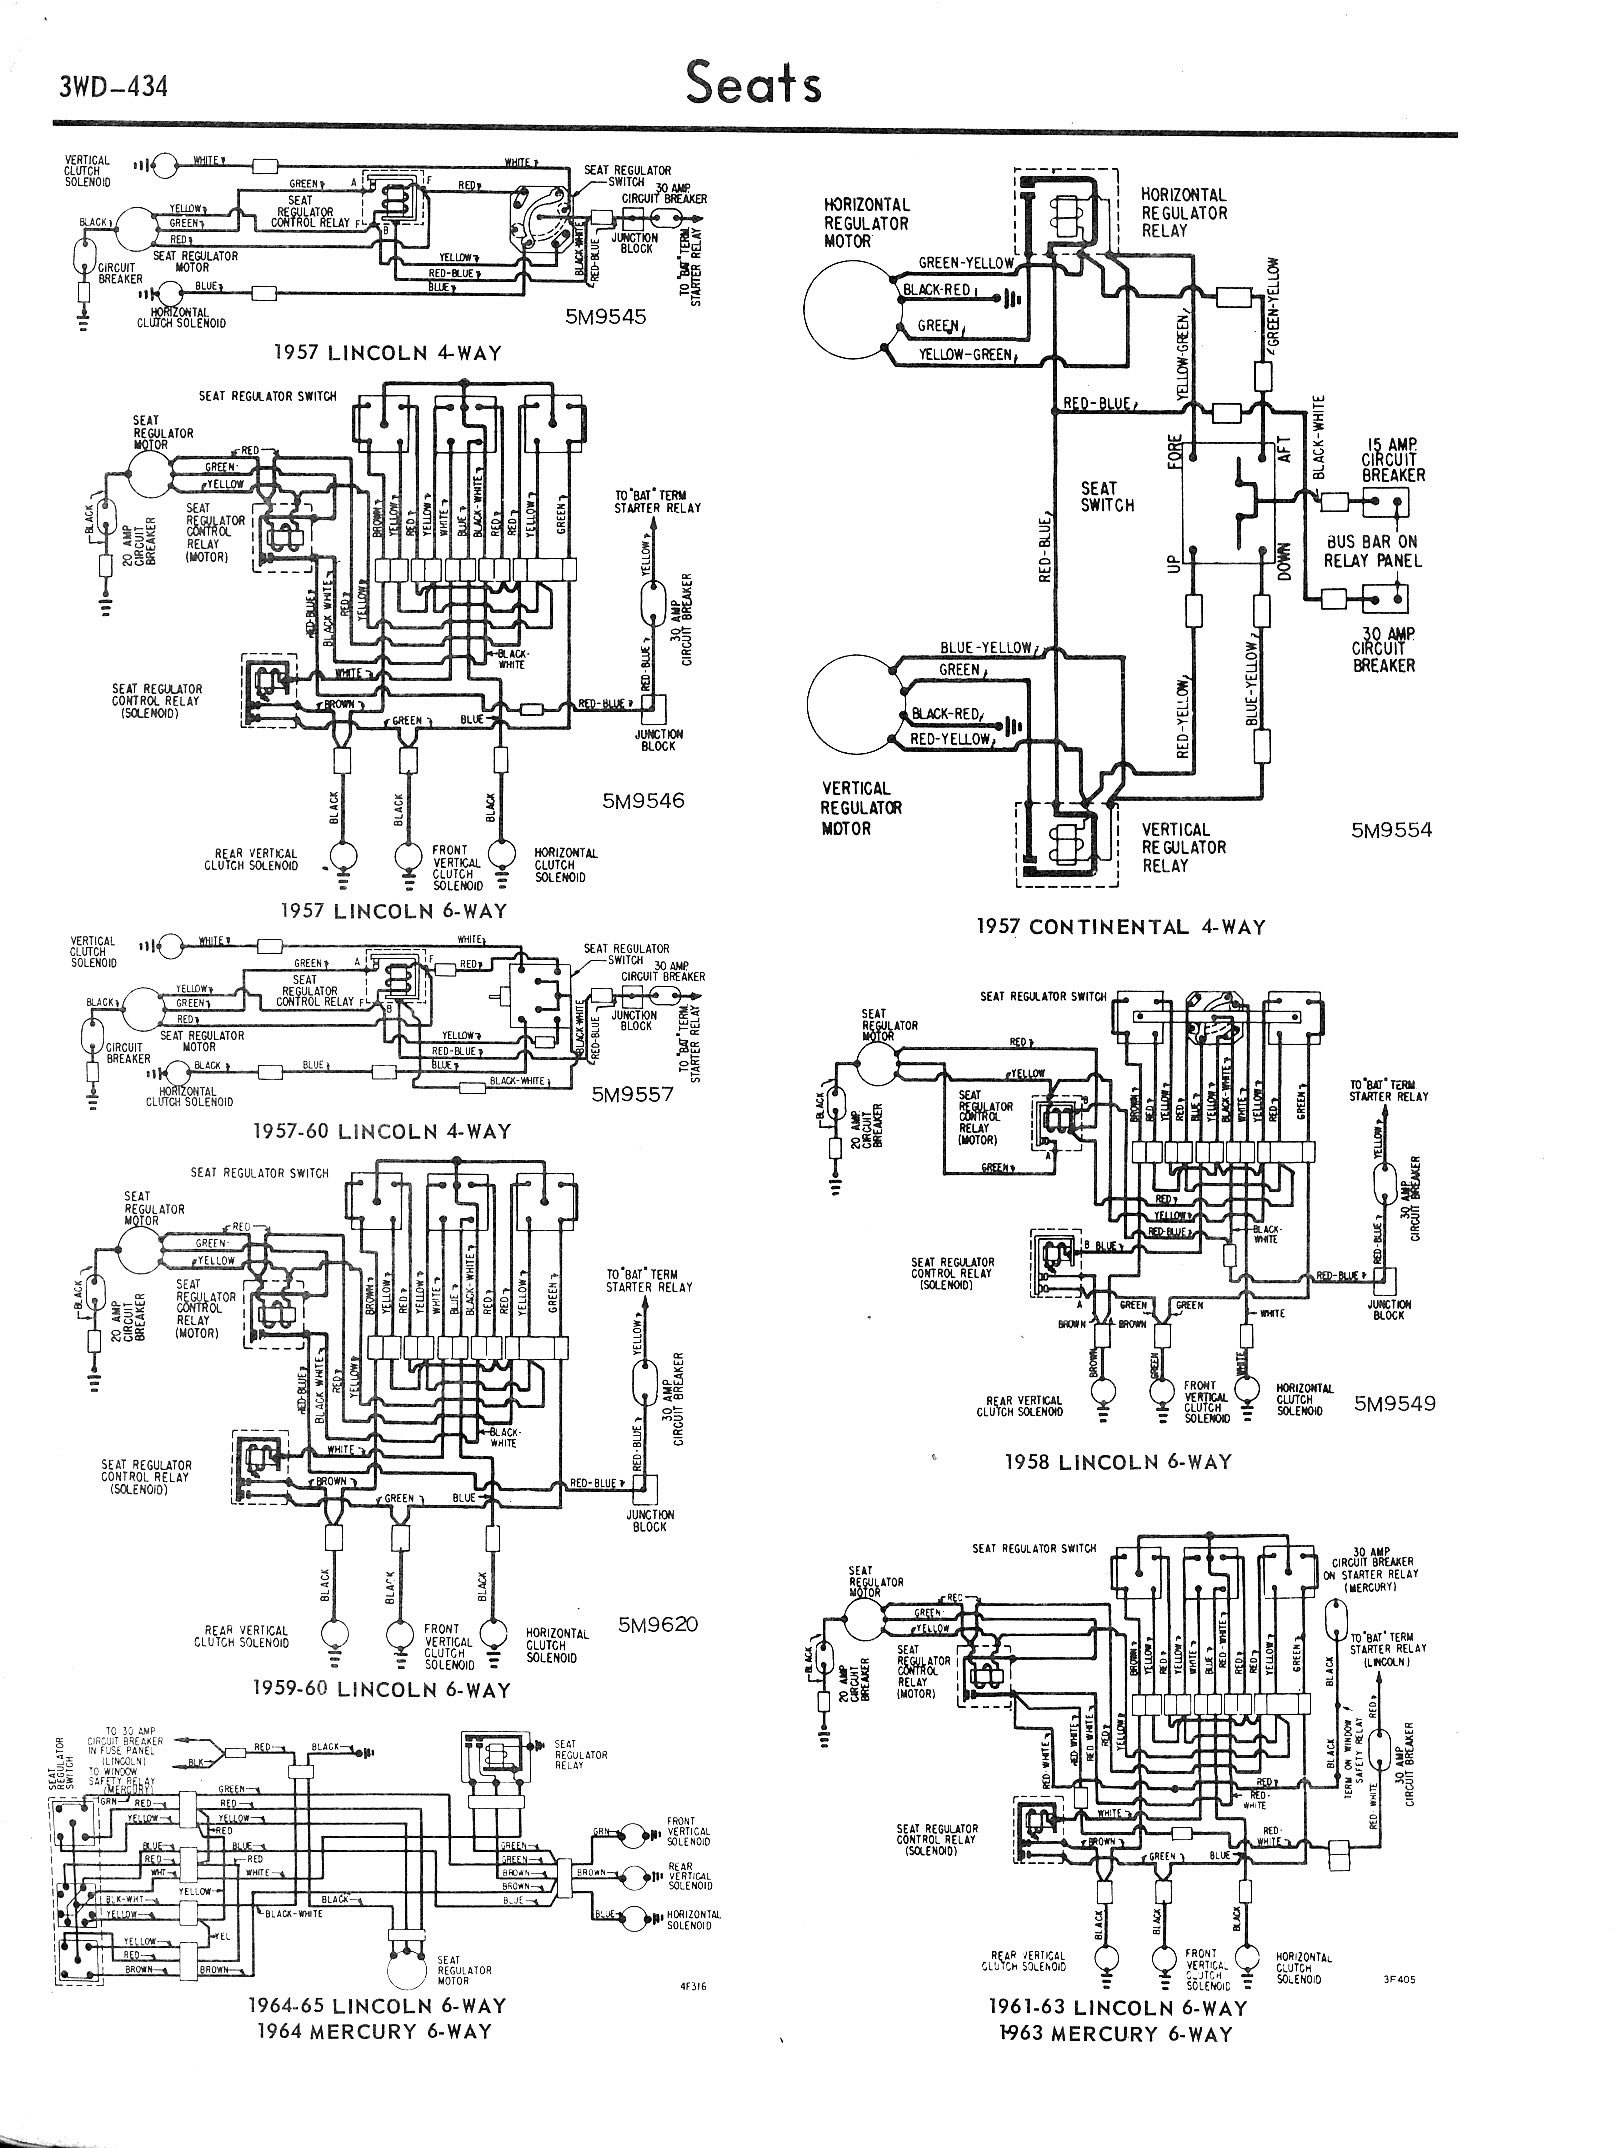 ford diagrams 57 65 lincoln 4 way 6 way 57 continental 6 way 63 64 mercury 6 way